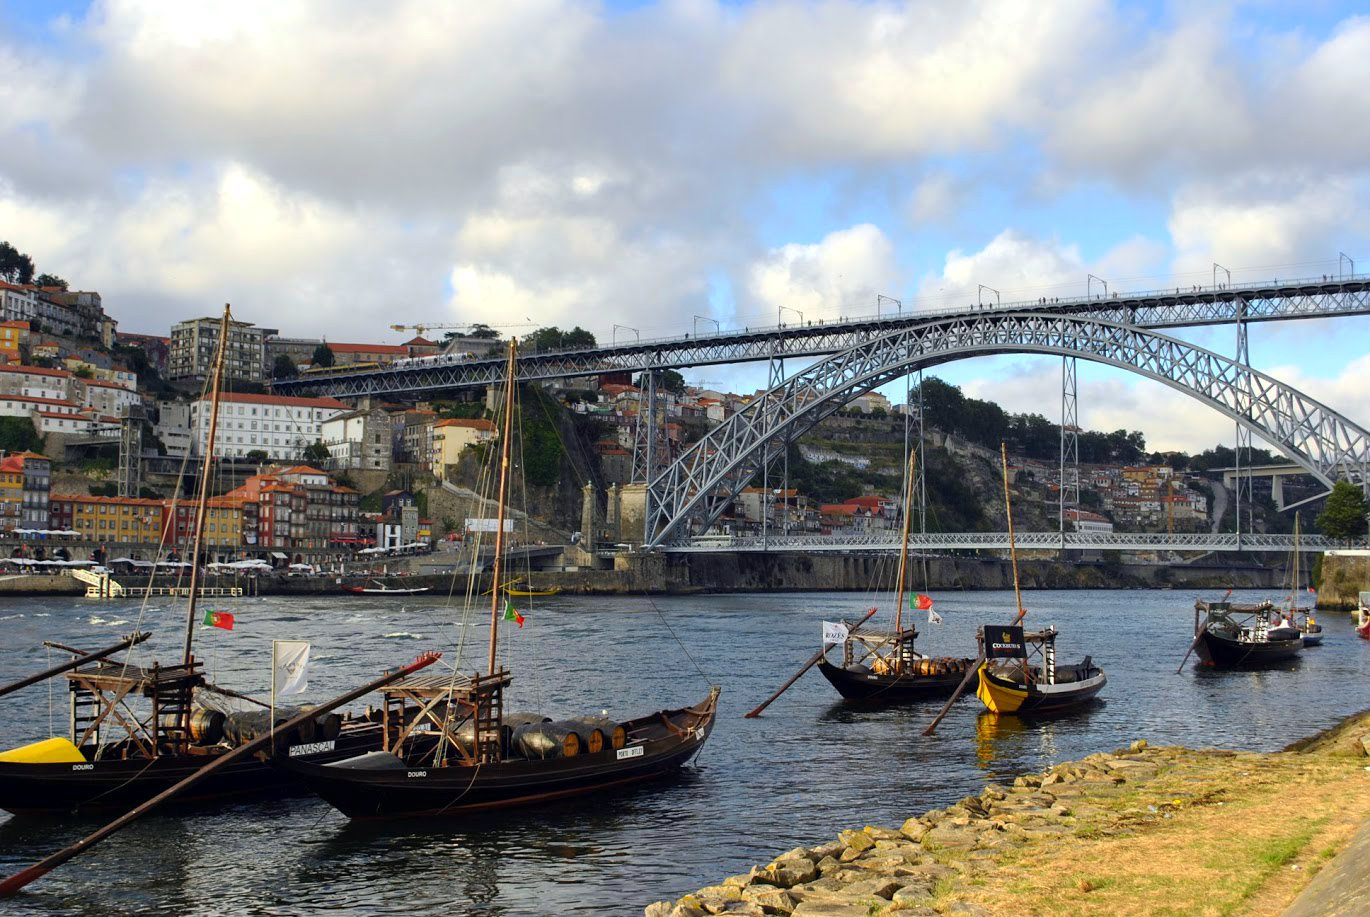 Rebelo Boats on the river Douro, Porto.